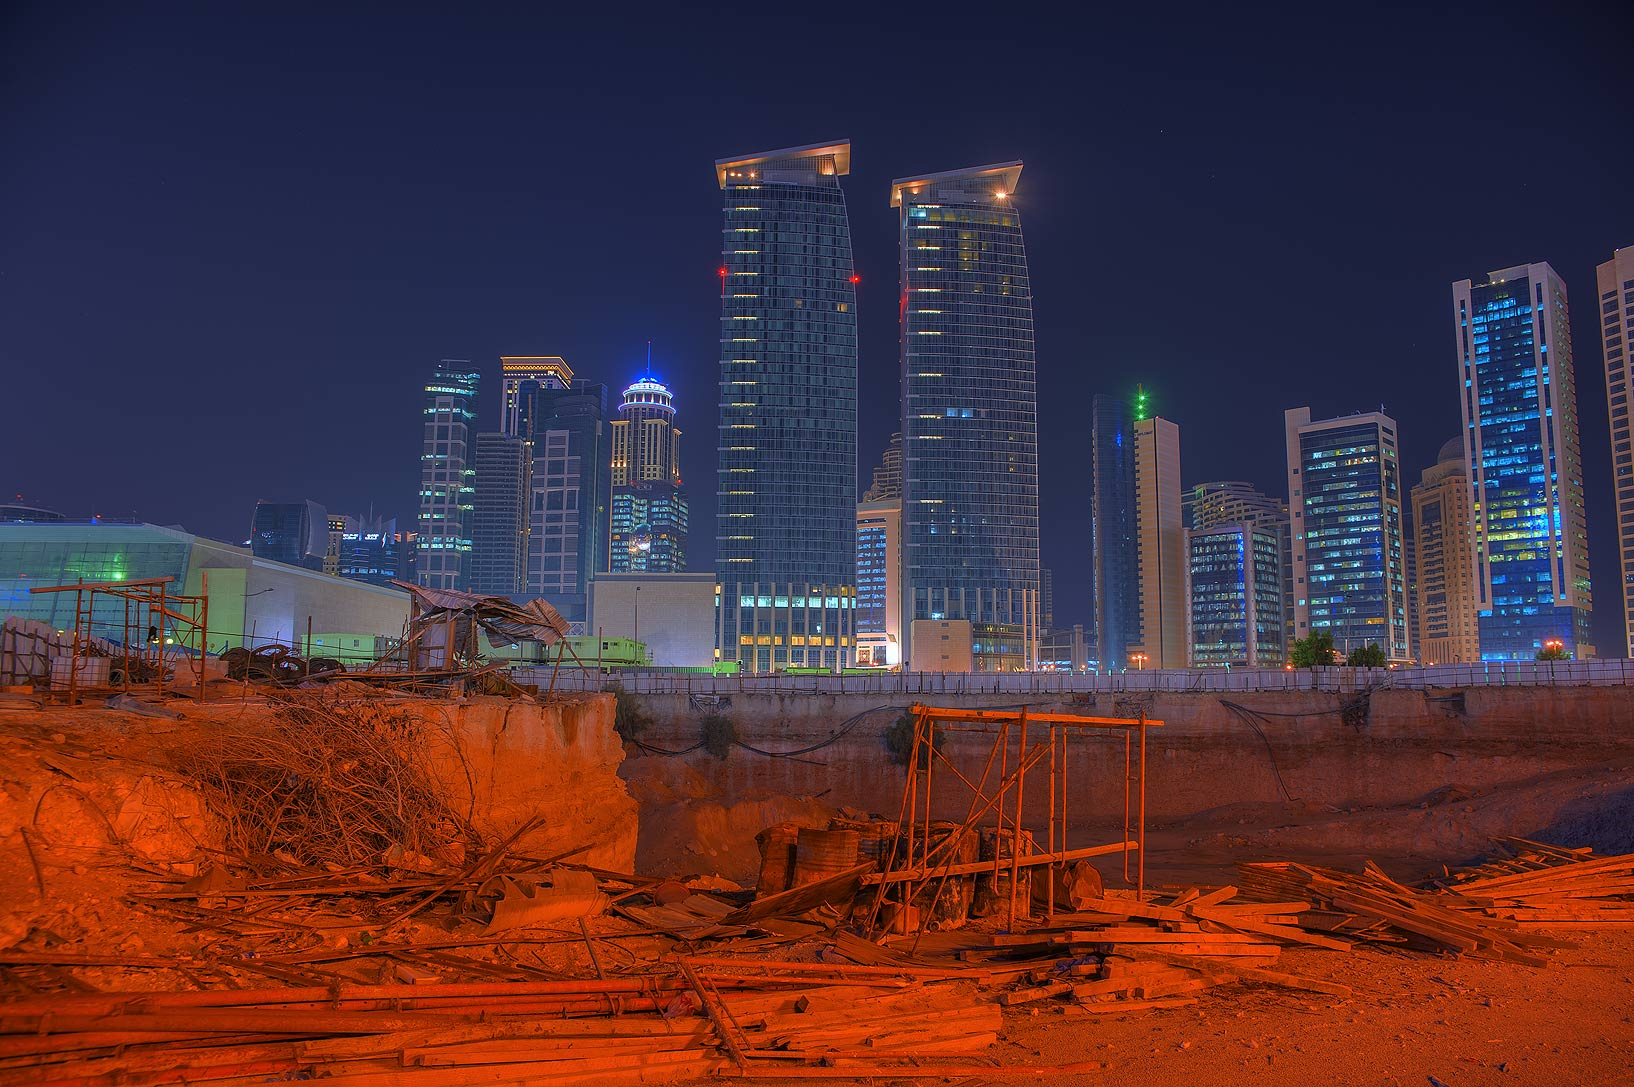 Merweb and Rotana towers behind a pit in West Bay. Doha, Qatar